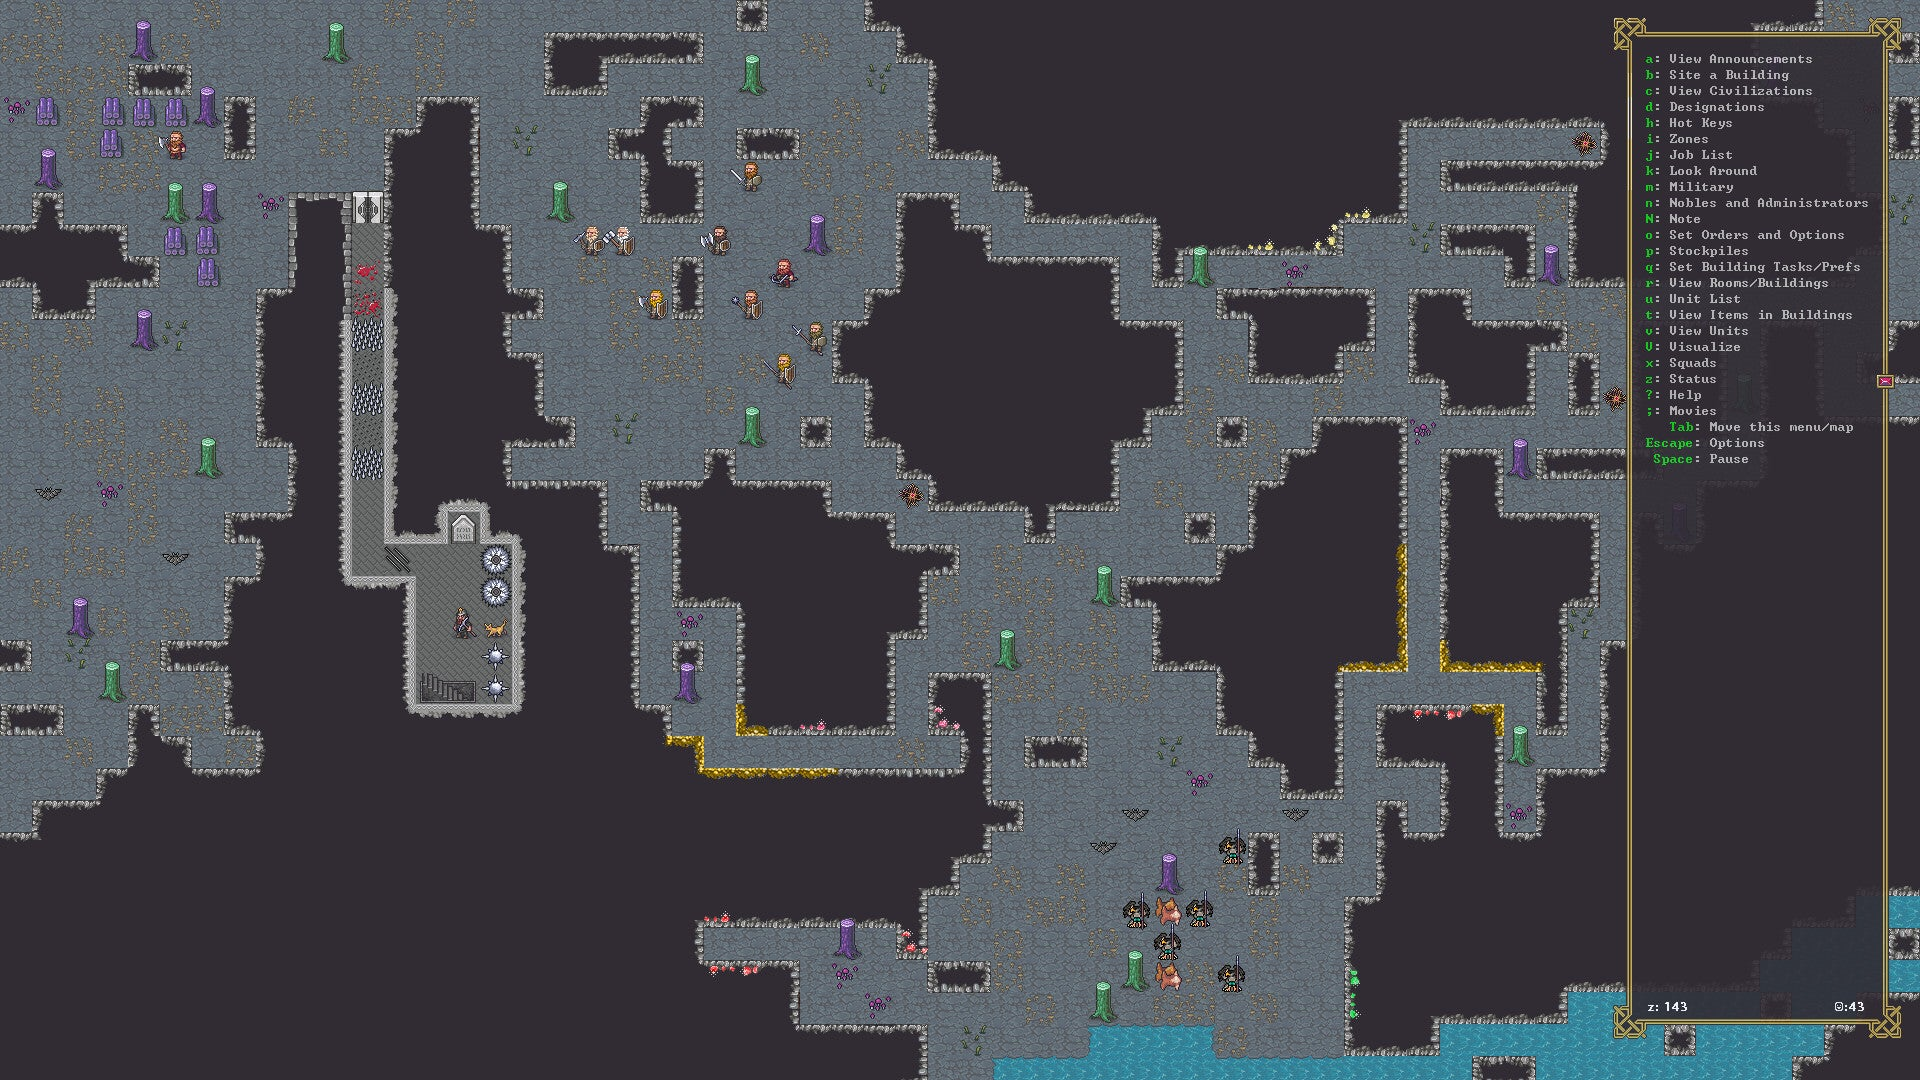 Dwarf Fortress Creator's Favourite Bug Questions The Nature Of God